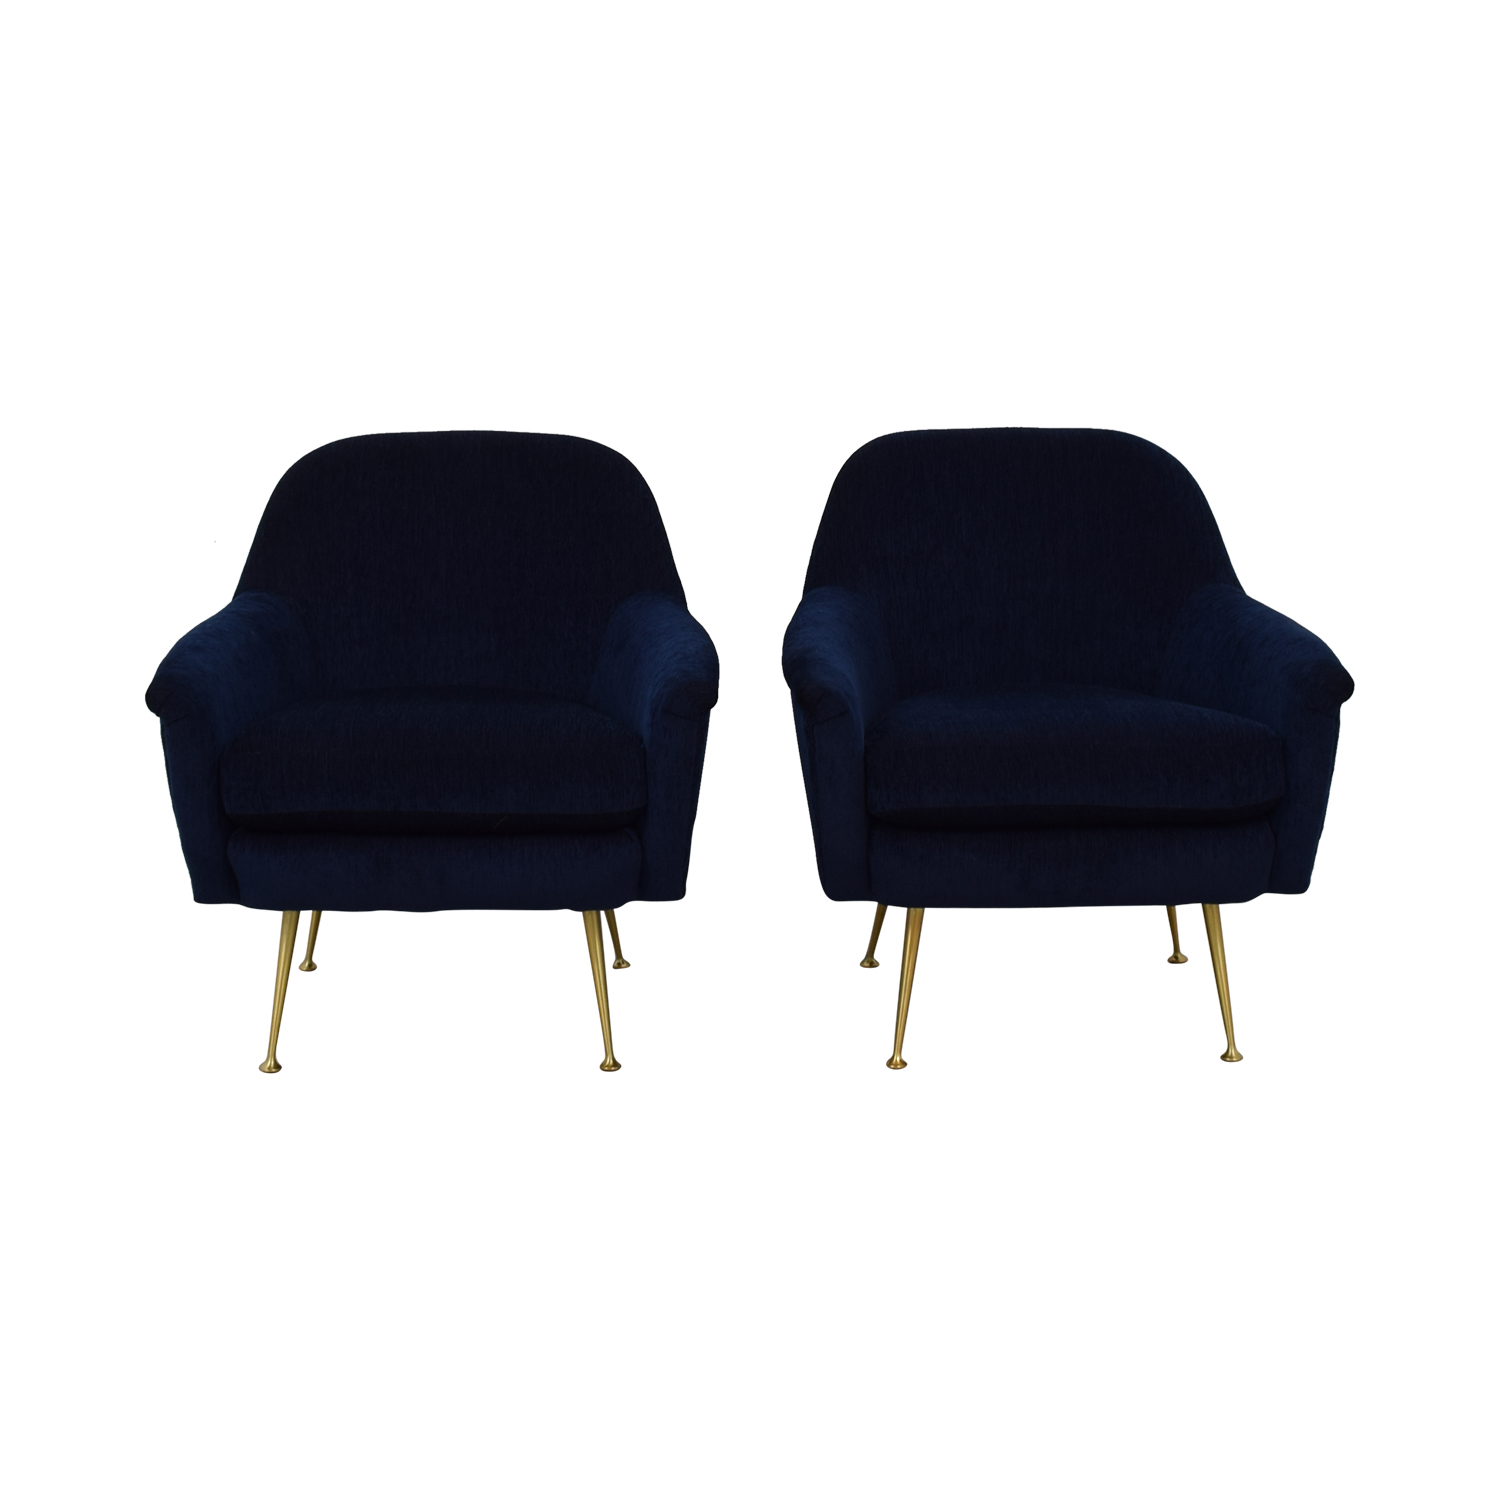 West Elm West Elm Phoebe Chairs Accent Chairs